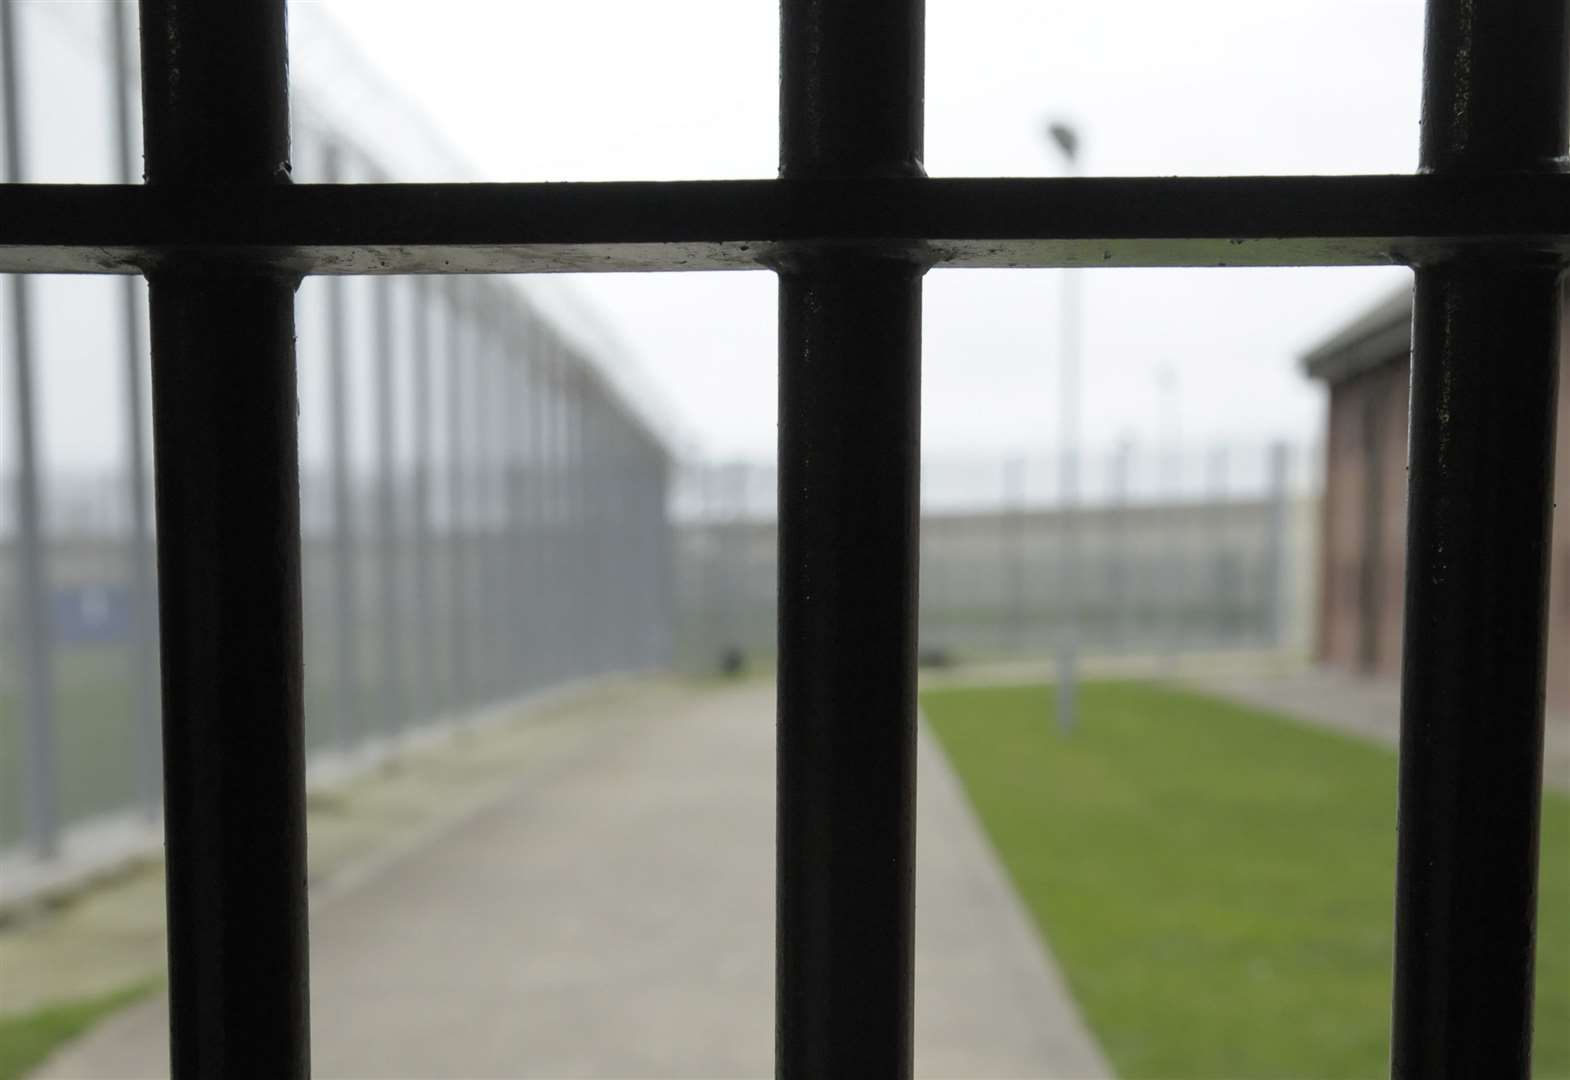 Woman prison officer had affairs with inmates